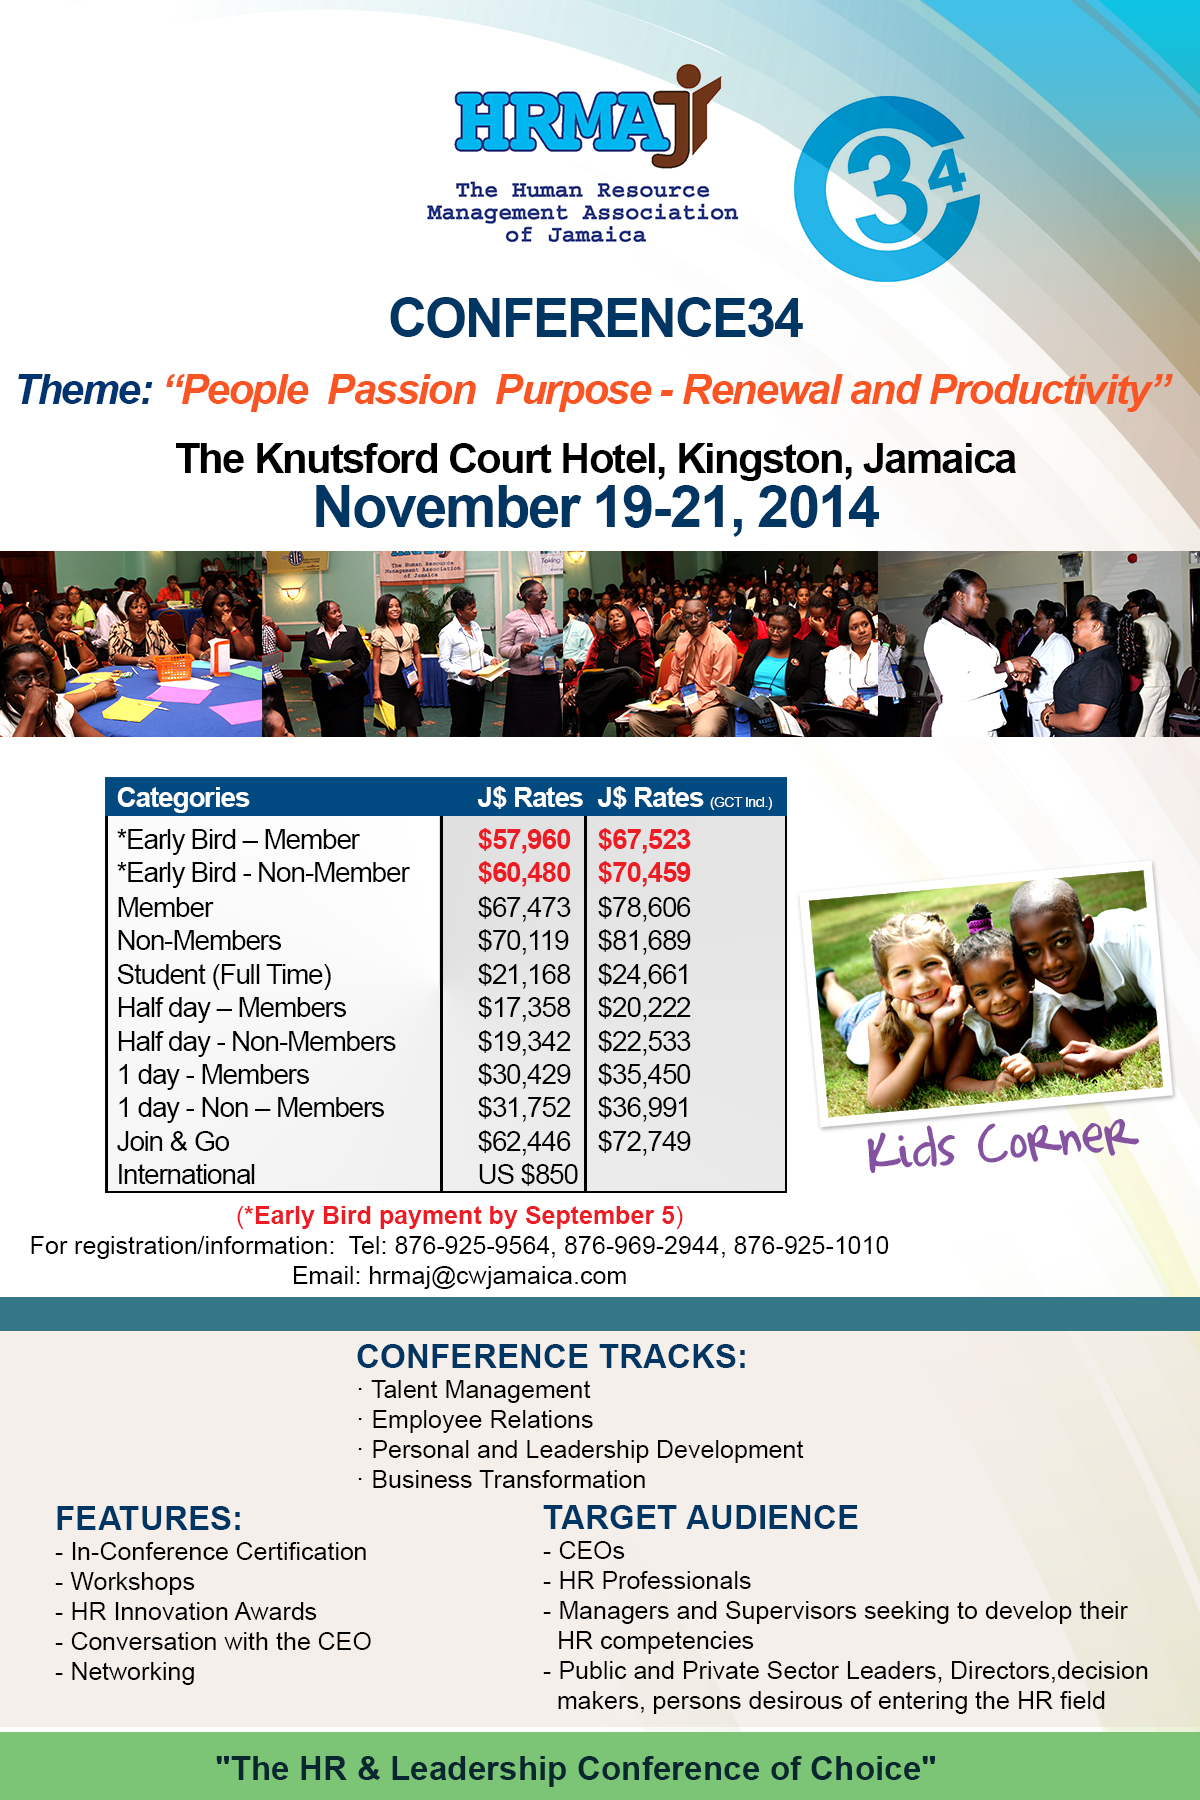 Conference34: People Passion Purpose - Renewal and Productivity